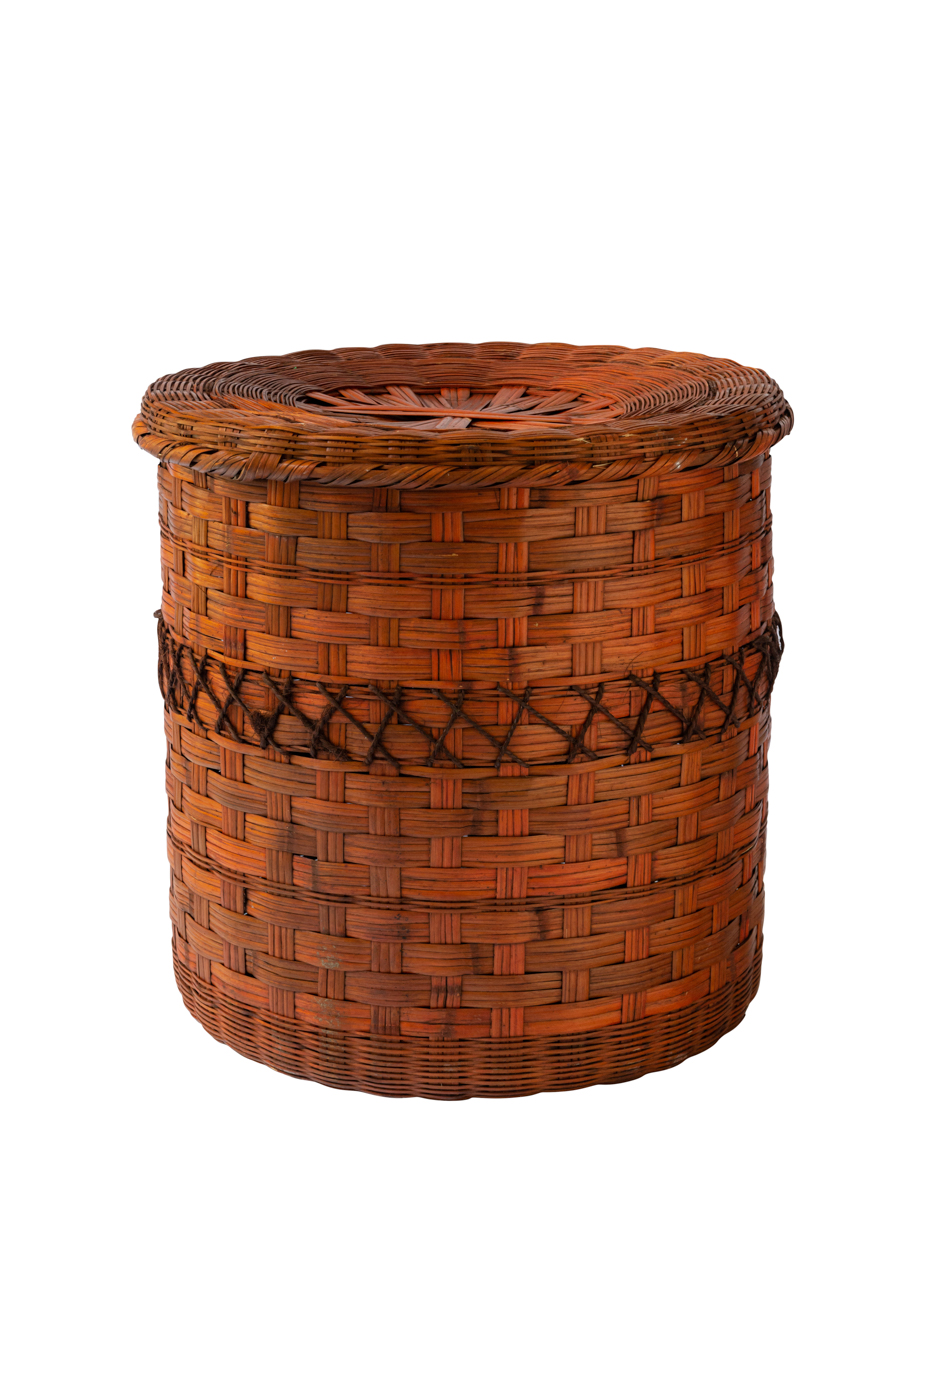 Cylindrical natural fibre basket with lid